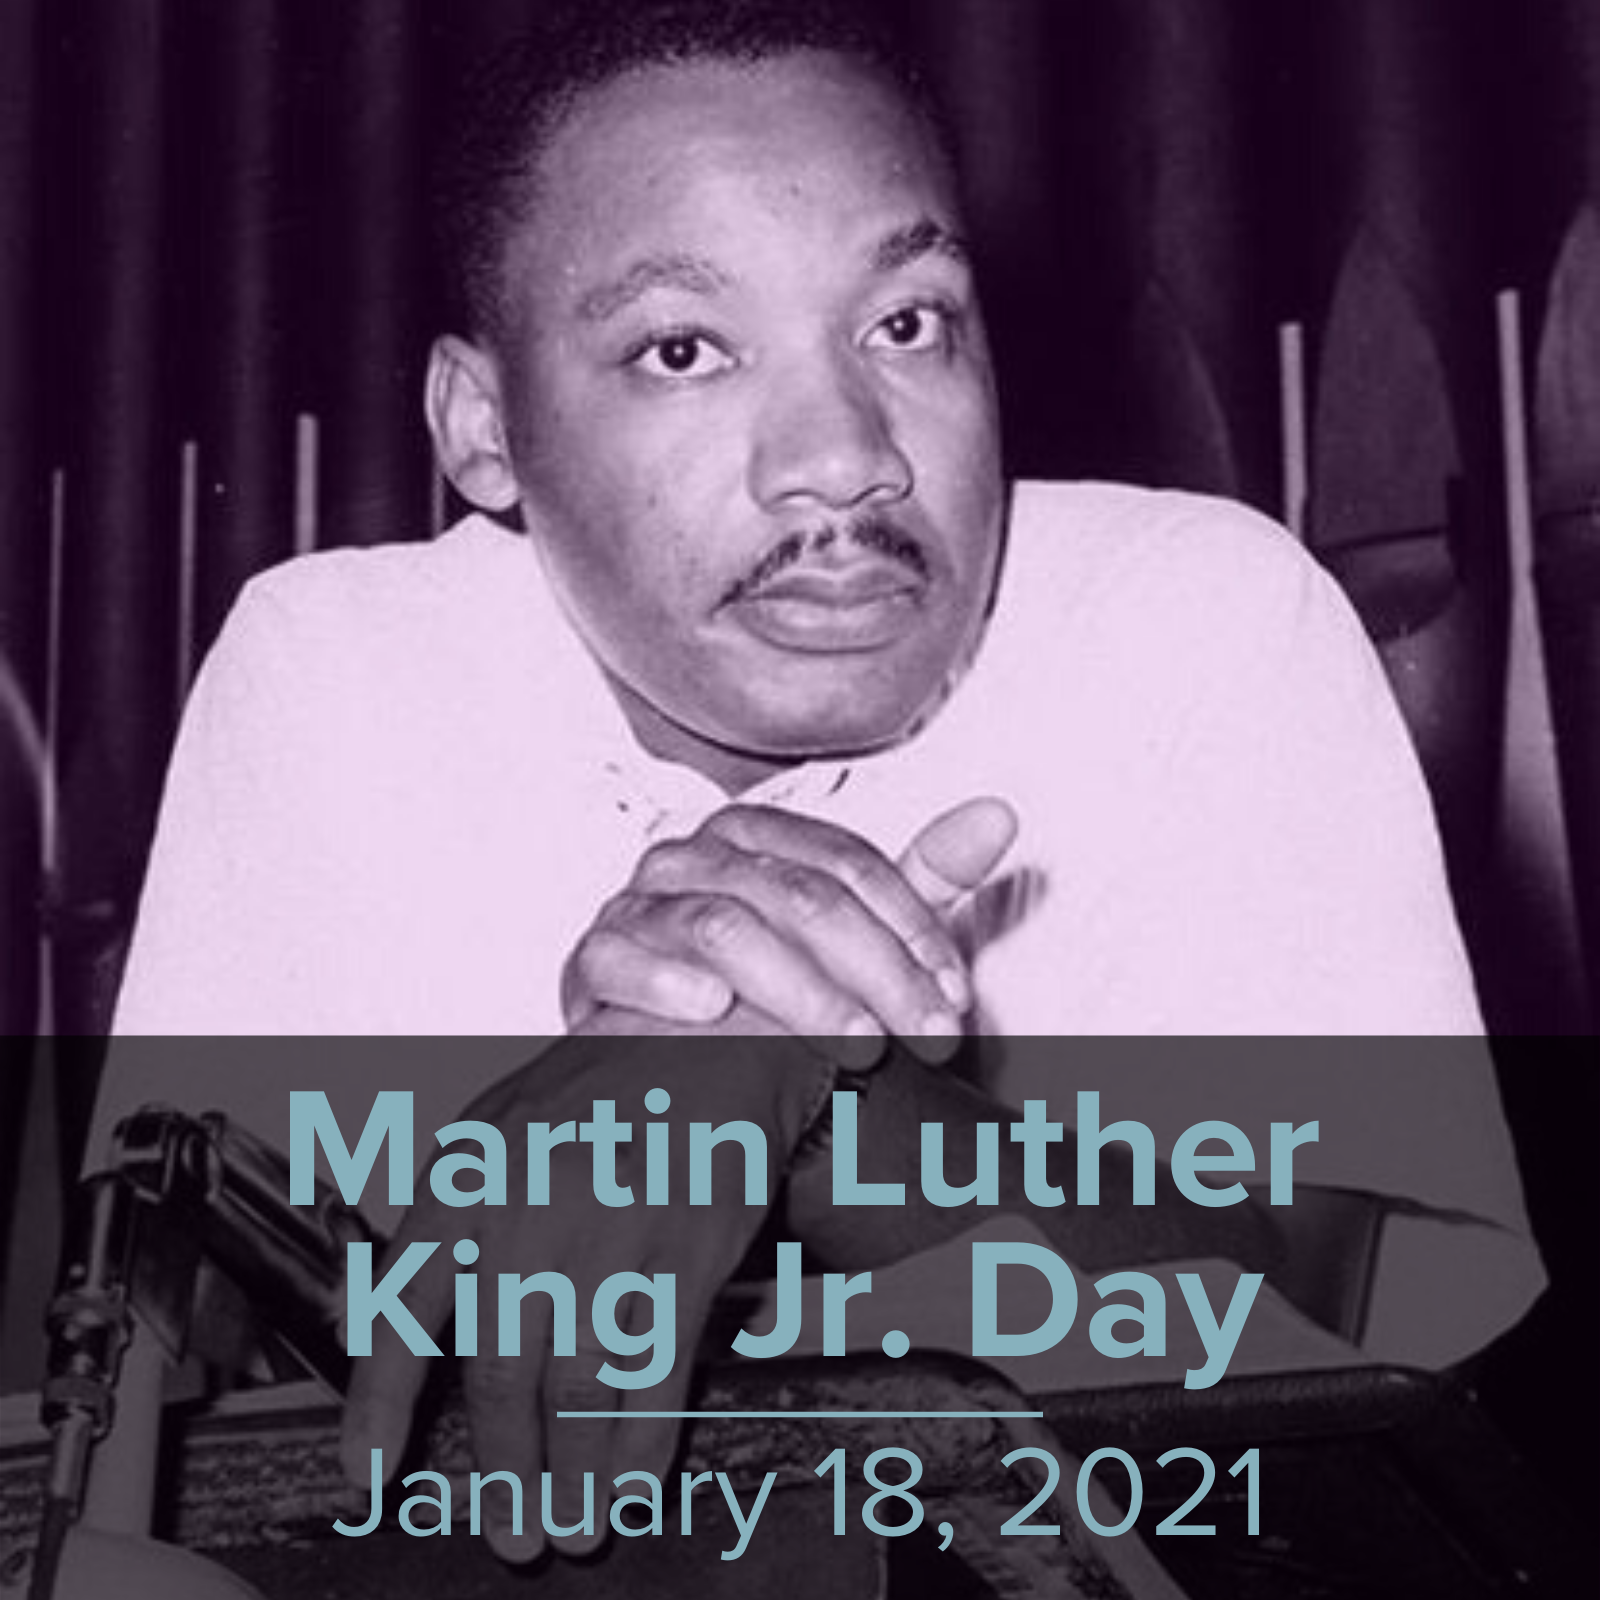 Martin_Luther_King_Jr_Day.png